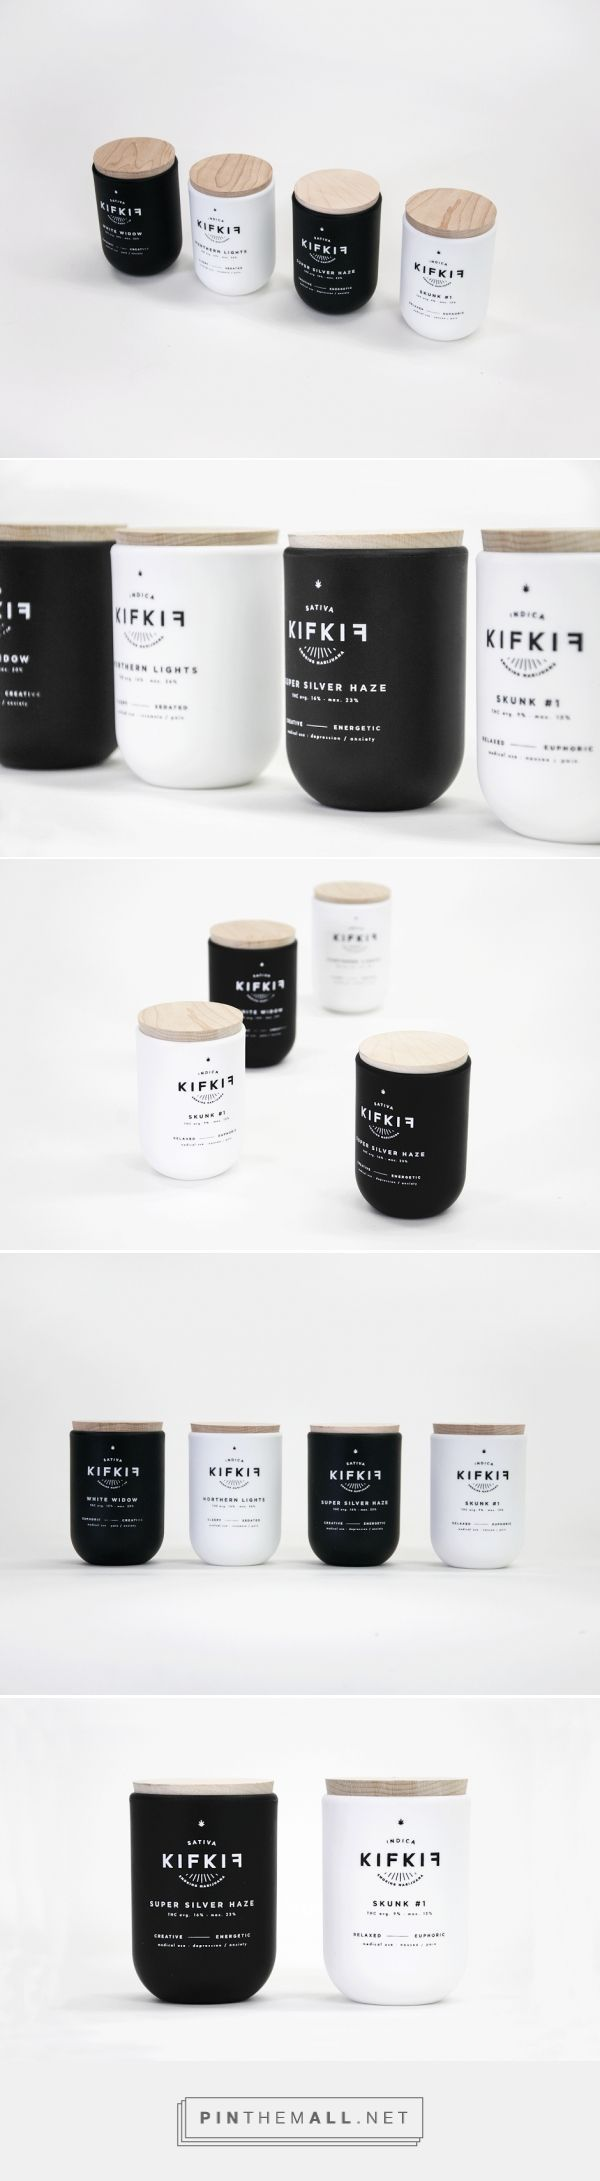 Kif Kif (Student Project) - Packaging of the World - Creative Package Design Gallery - www.packagingofth...